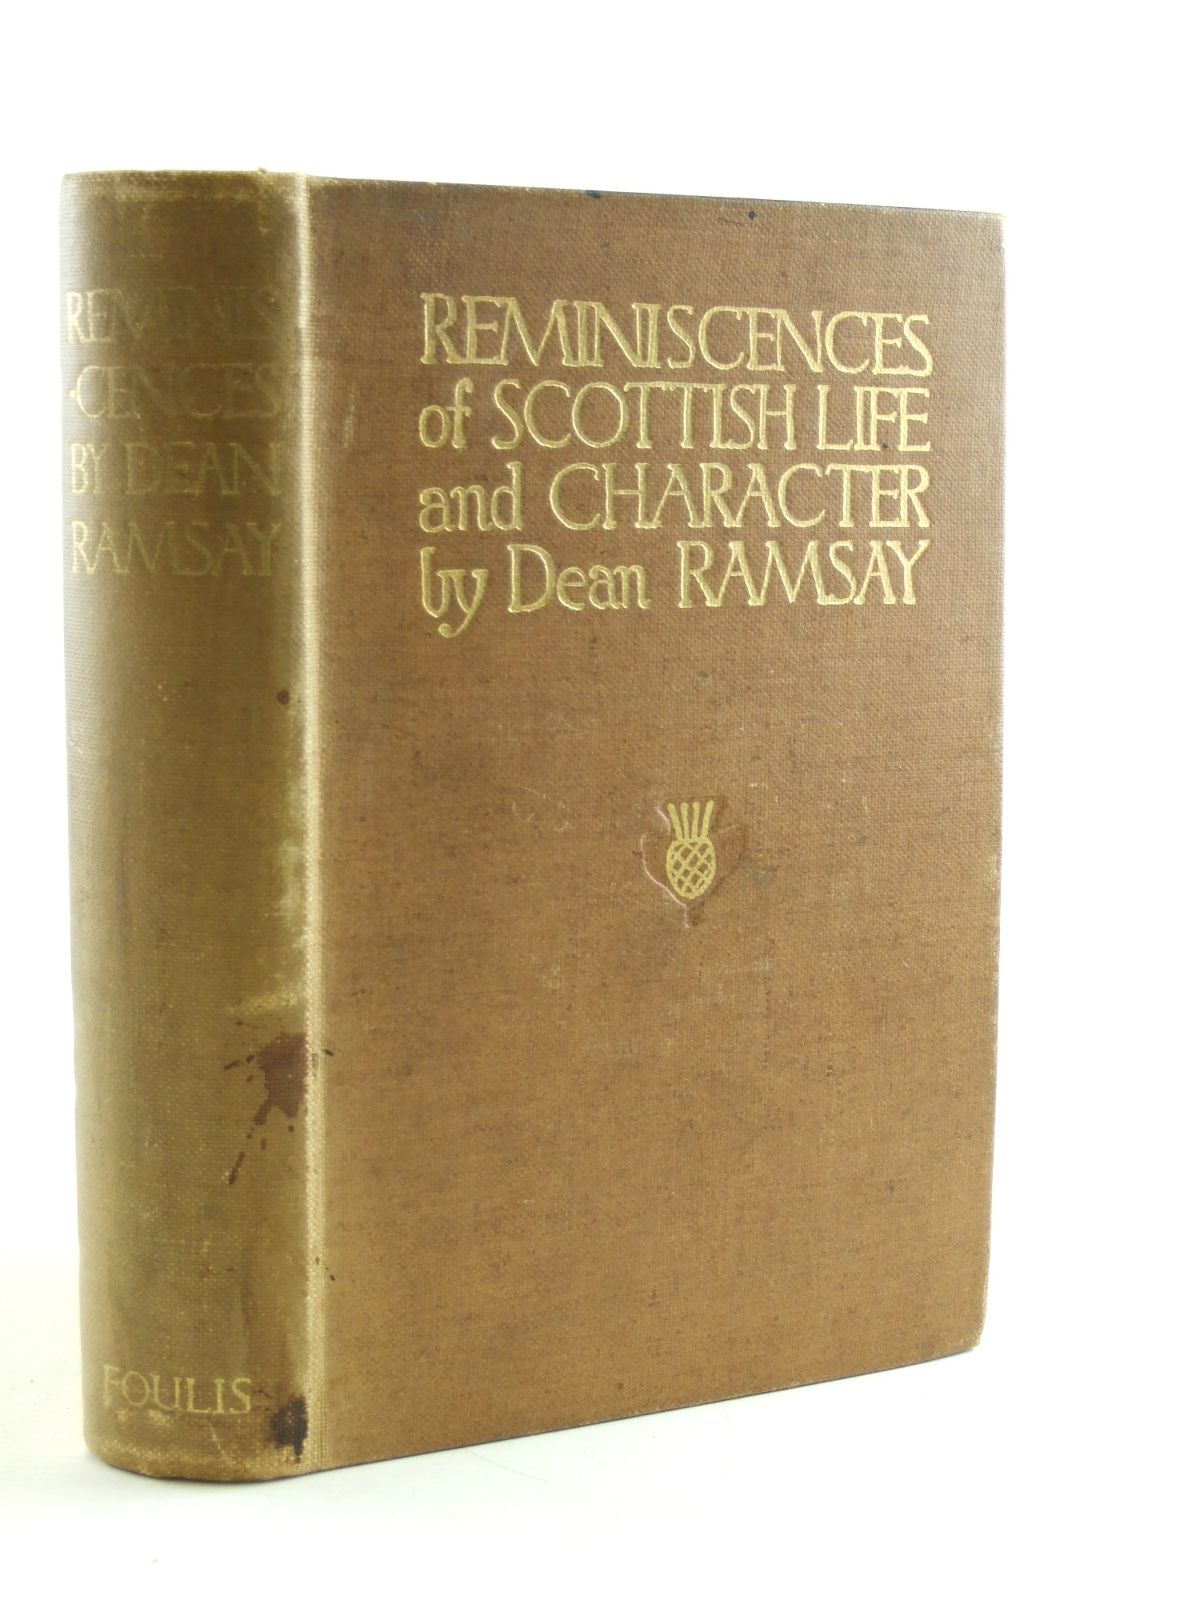 Photo of REMINISCENCES OF SCOTTISH LIFE AND CHARACTER written by Ramsay, Dean illustrated by Kerr, H.W published by T.N. Foulis (STOCK CODE: 1603736)  for sale by Stella & Rose's Books